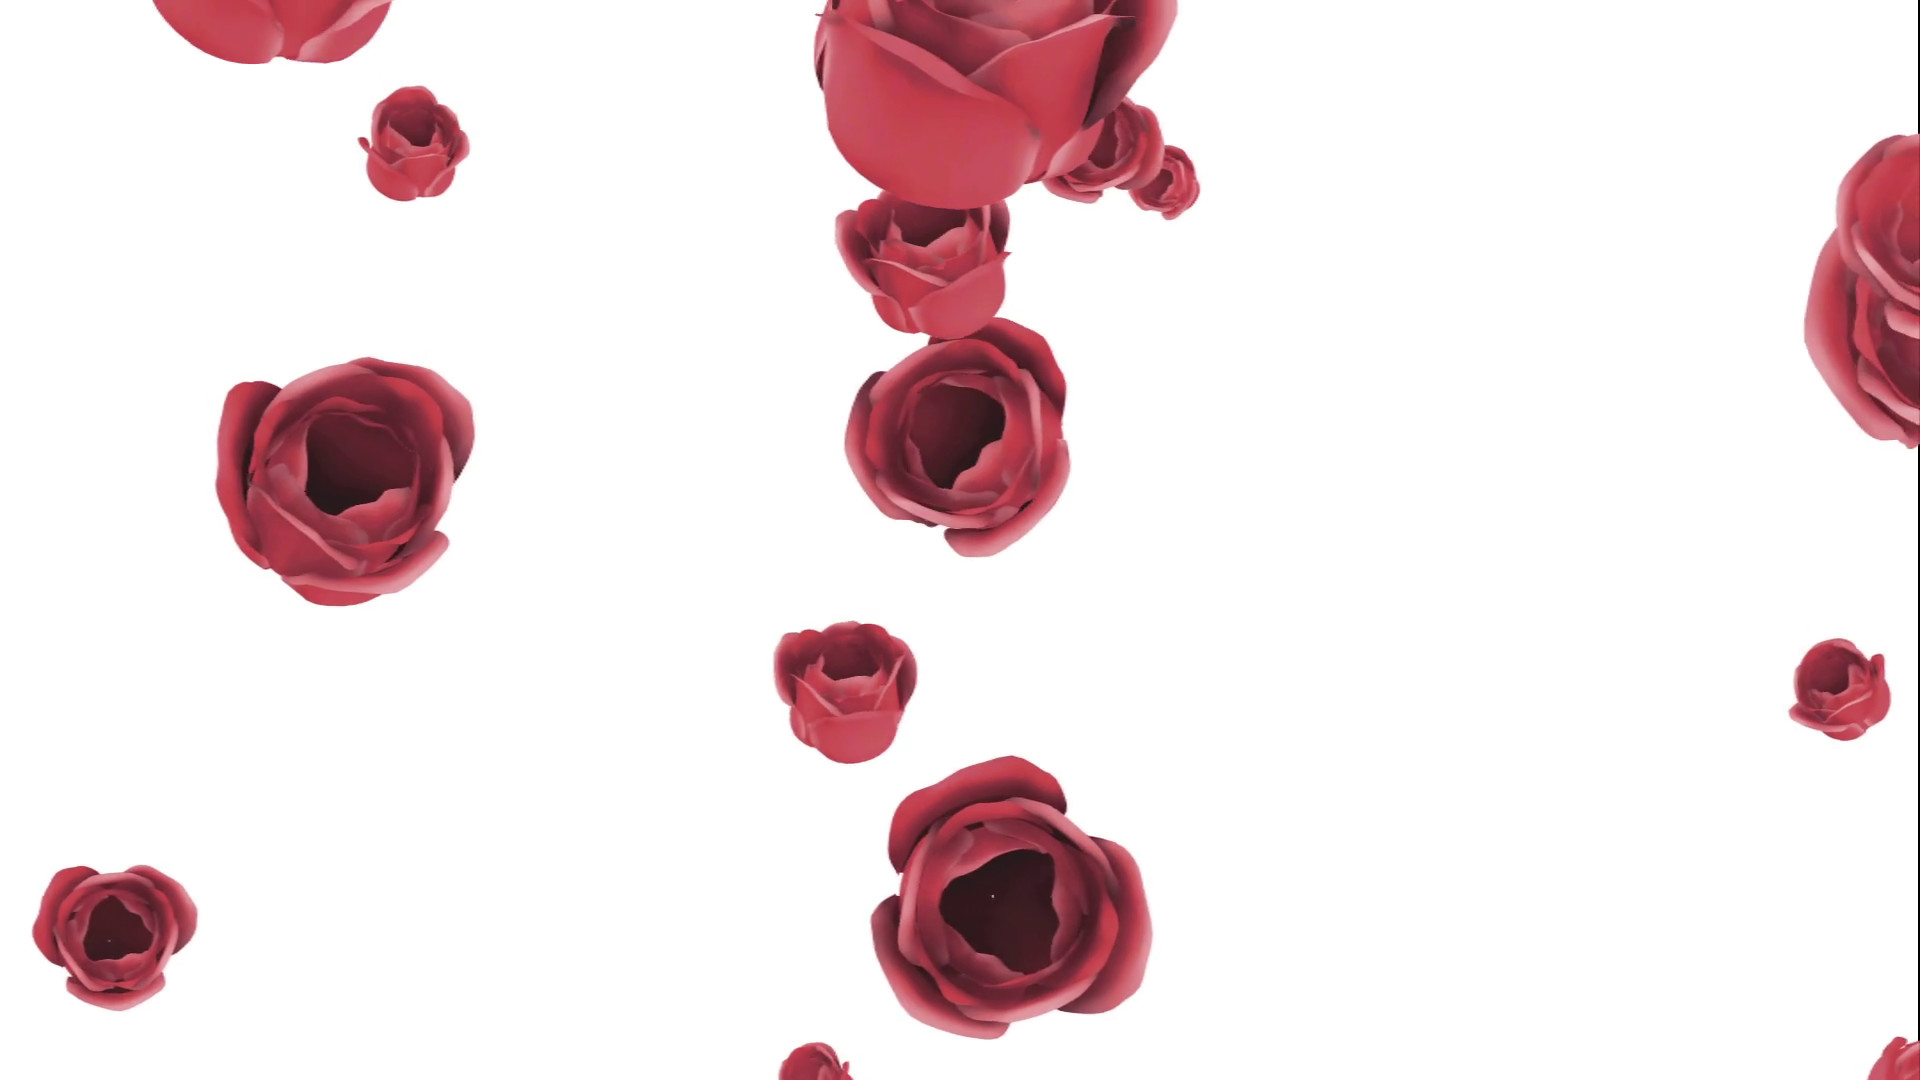 1920x1080 Falling red roses on a white background Motion Background - Storyblocks  Video